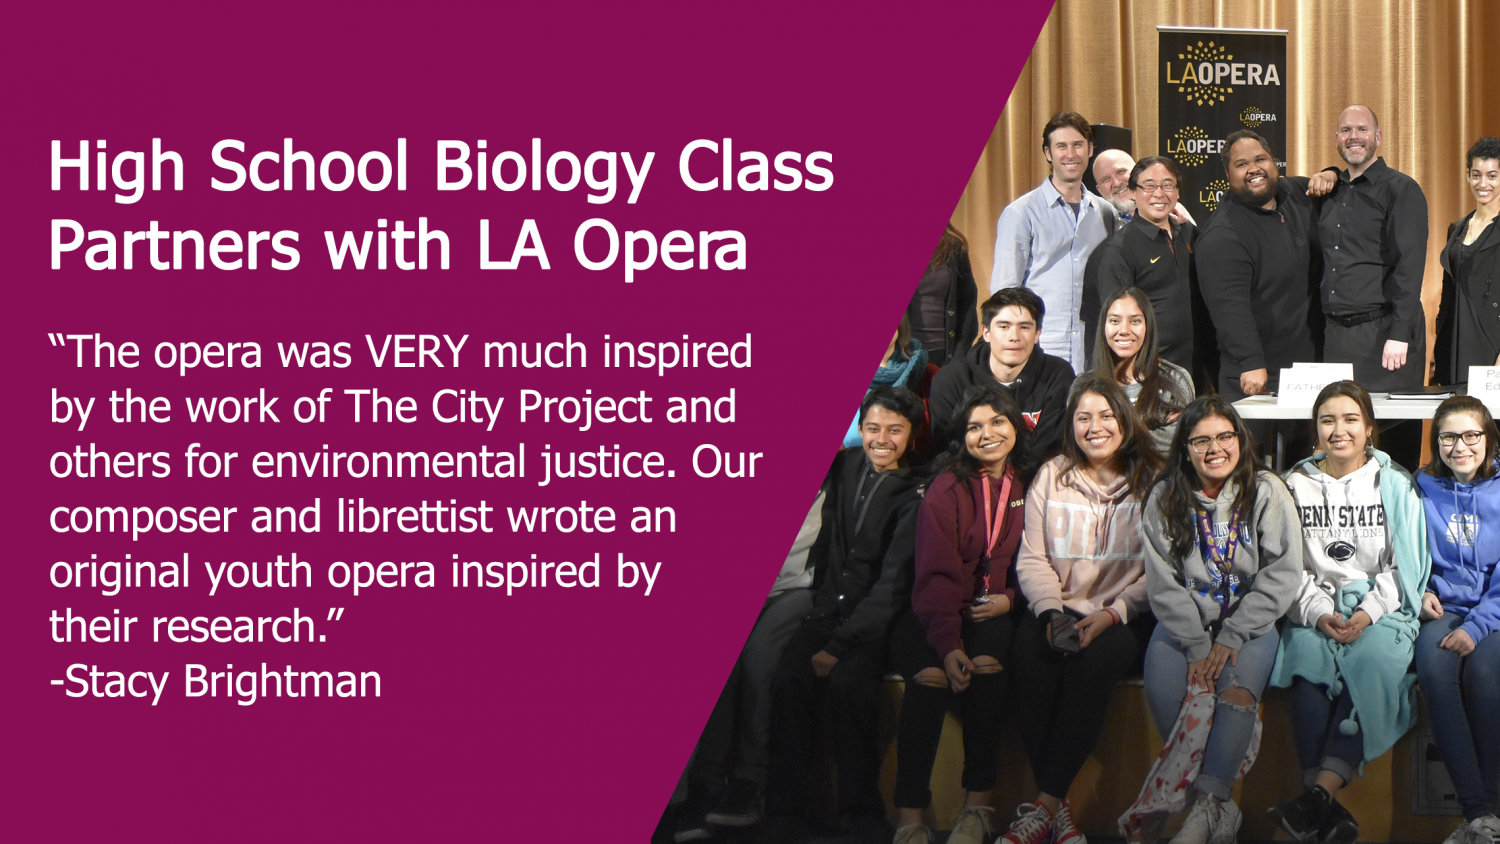 "High School Biology Class Partners with LA Opera: ""The opera was VERY much inspired by the work of The City Project and others for environmental justice. Our compose and librettist wrote an original youth opera inspired by their research.""-Stacy Brightman"